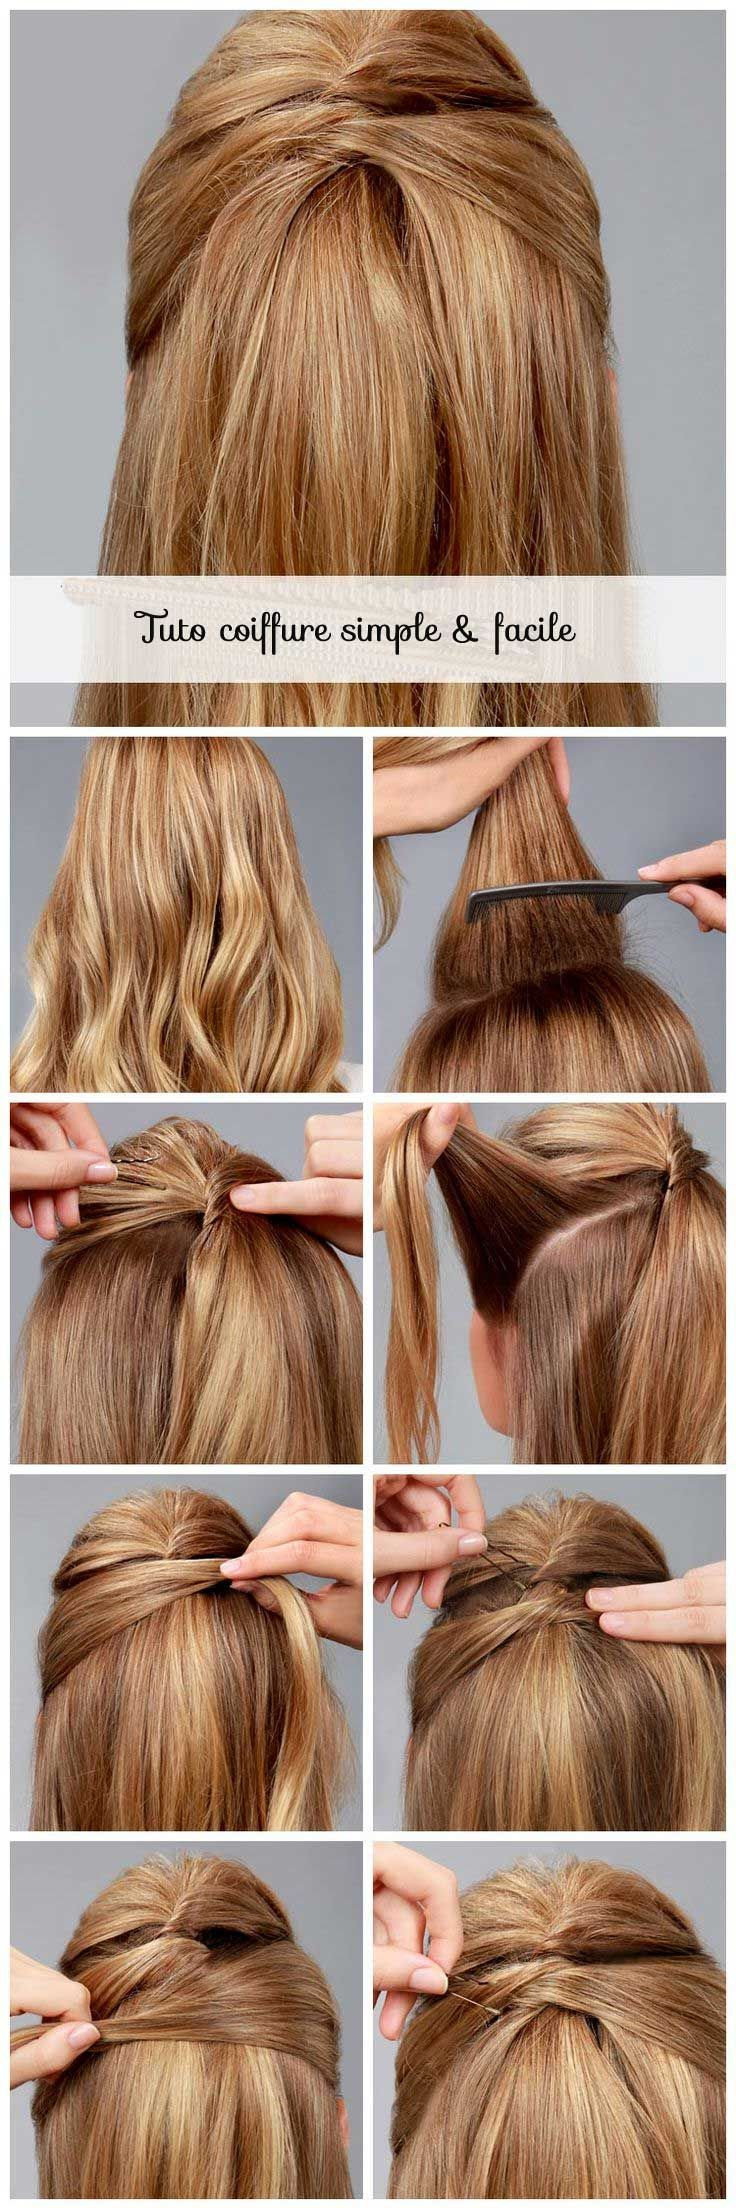 Souvent 310 best tuto de coiffure images on Pinterest | Hairstyles, Hair  JN89